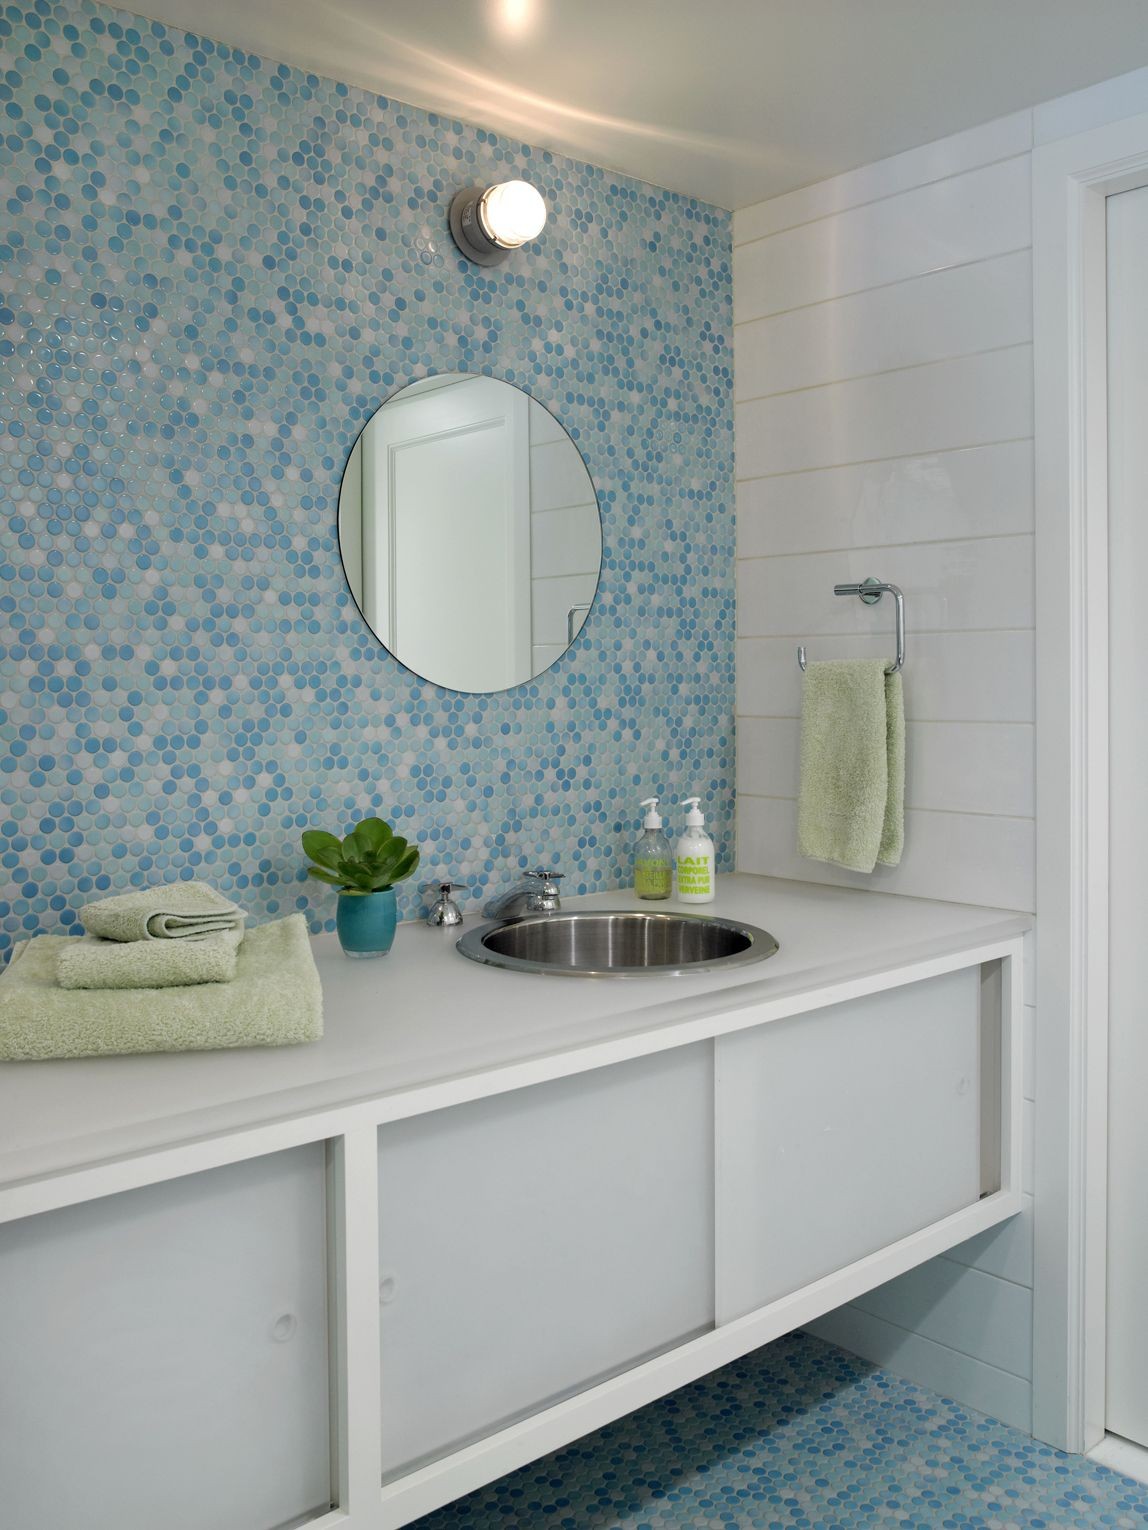 33 Bathroom Tile Design Ideas   Tiles For Floor, Showers And Walls In  Bathroom